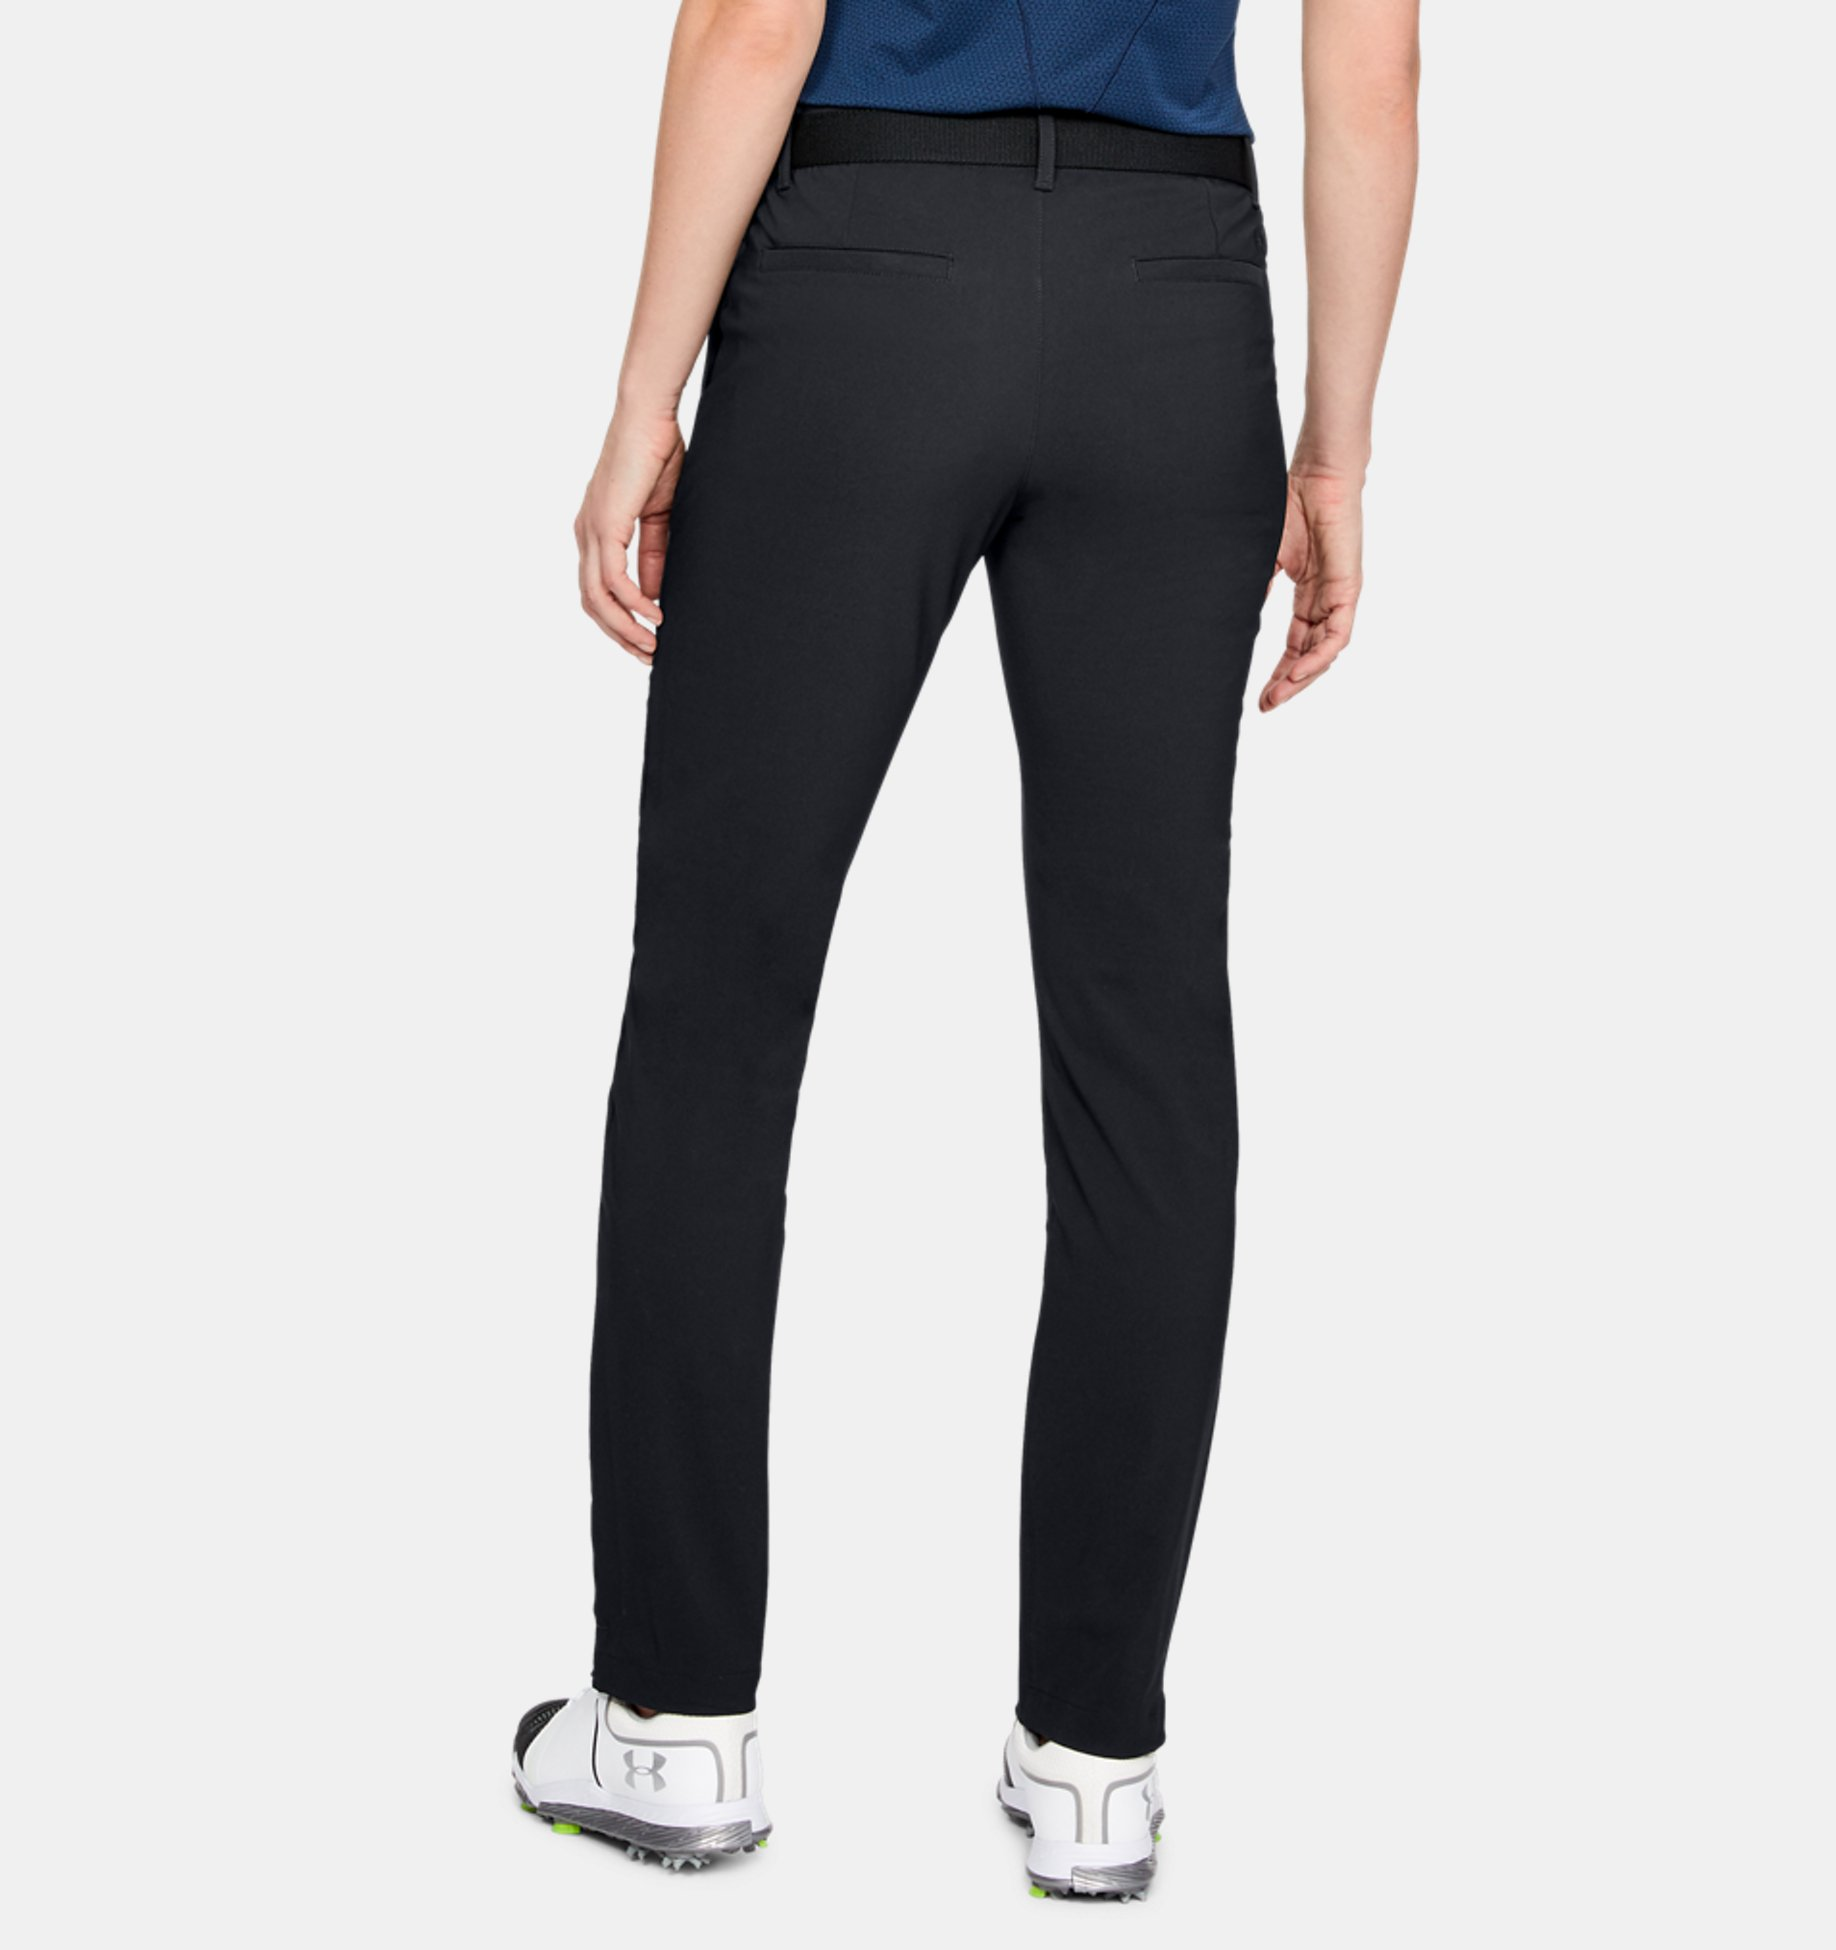 a1bd271418f9a Women's ColdGear® Infrared Links Trousers | Under Armour IE